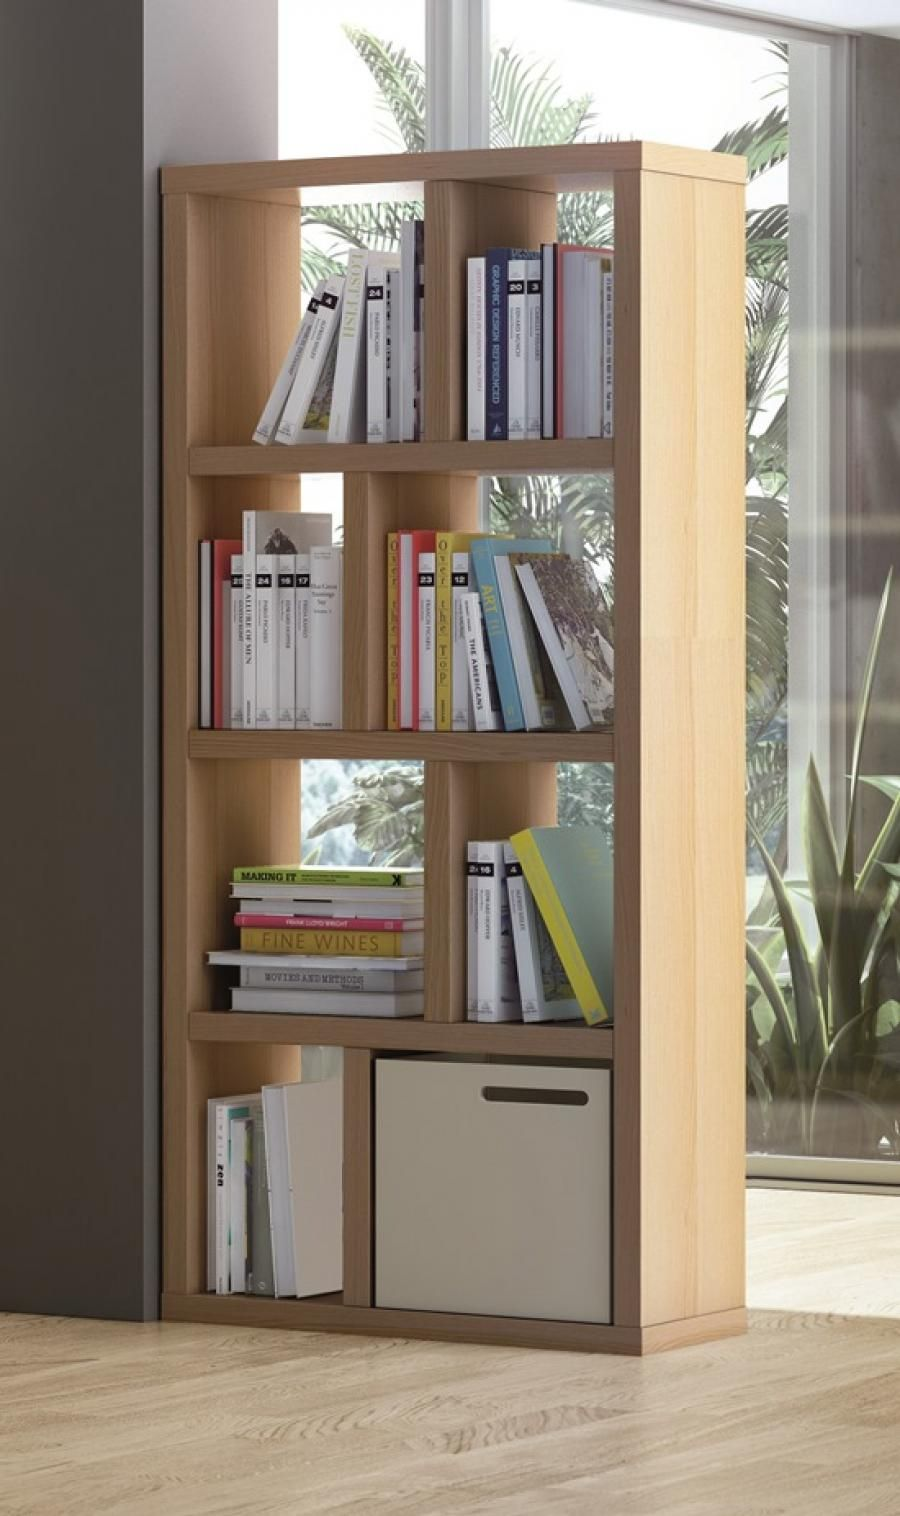 temahome berlin 4 level 70cm shelving unit in oak or pure white opt storage boxes jonny 39 s. Black Bedroom Furniture Sets. Home Design Ideas